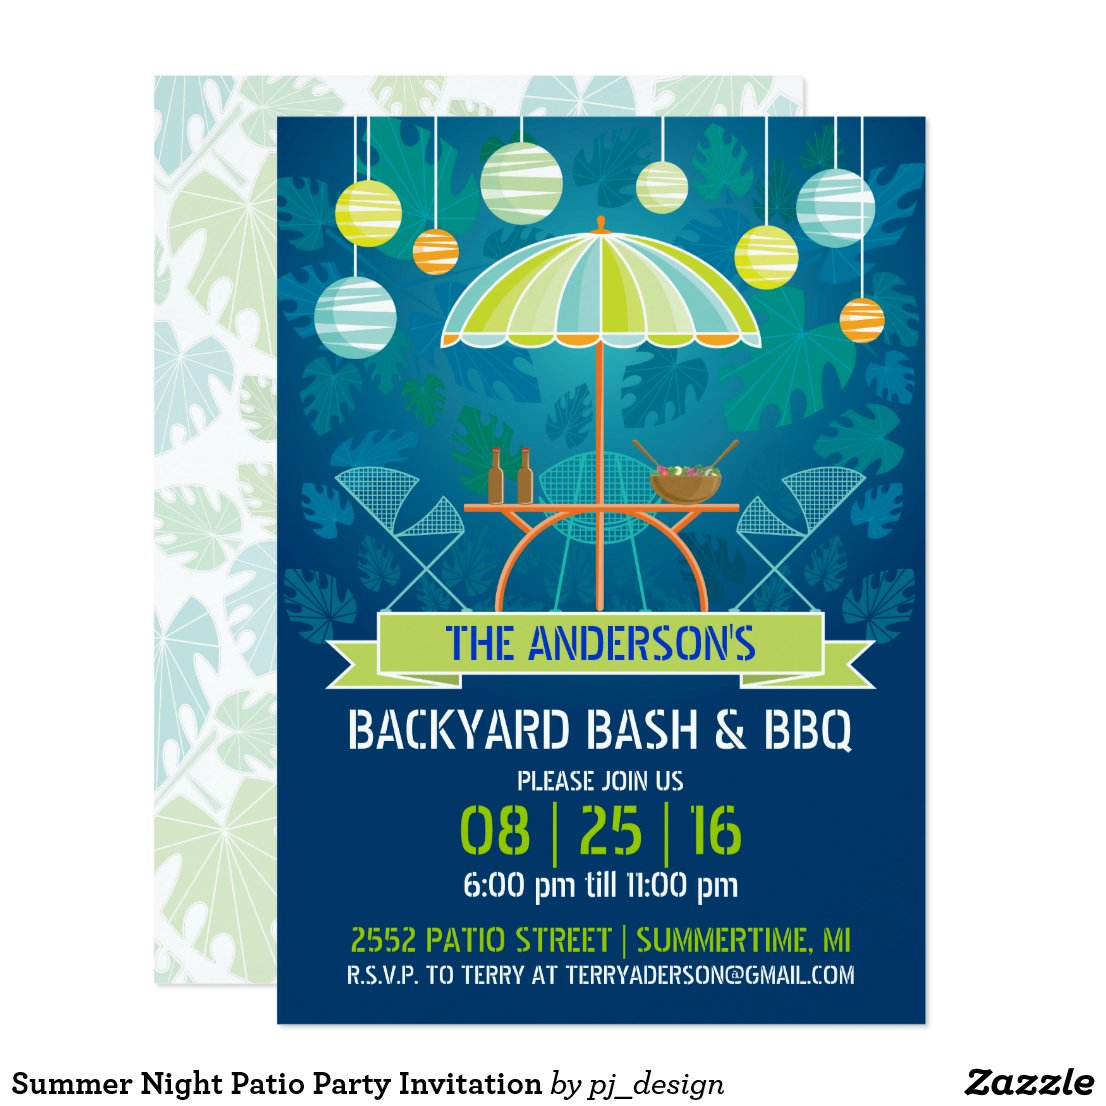 Summer Night Patio Party Invitation